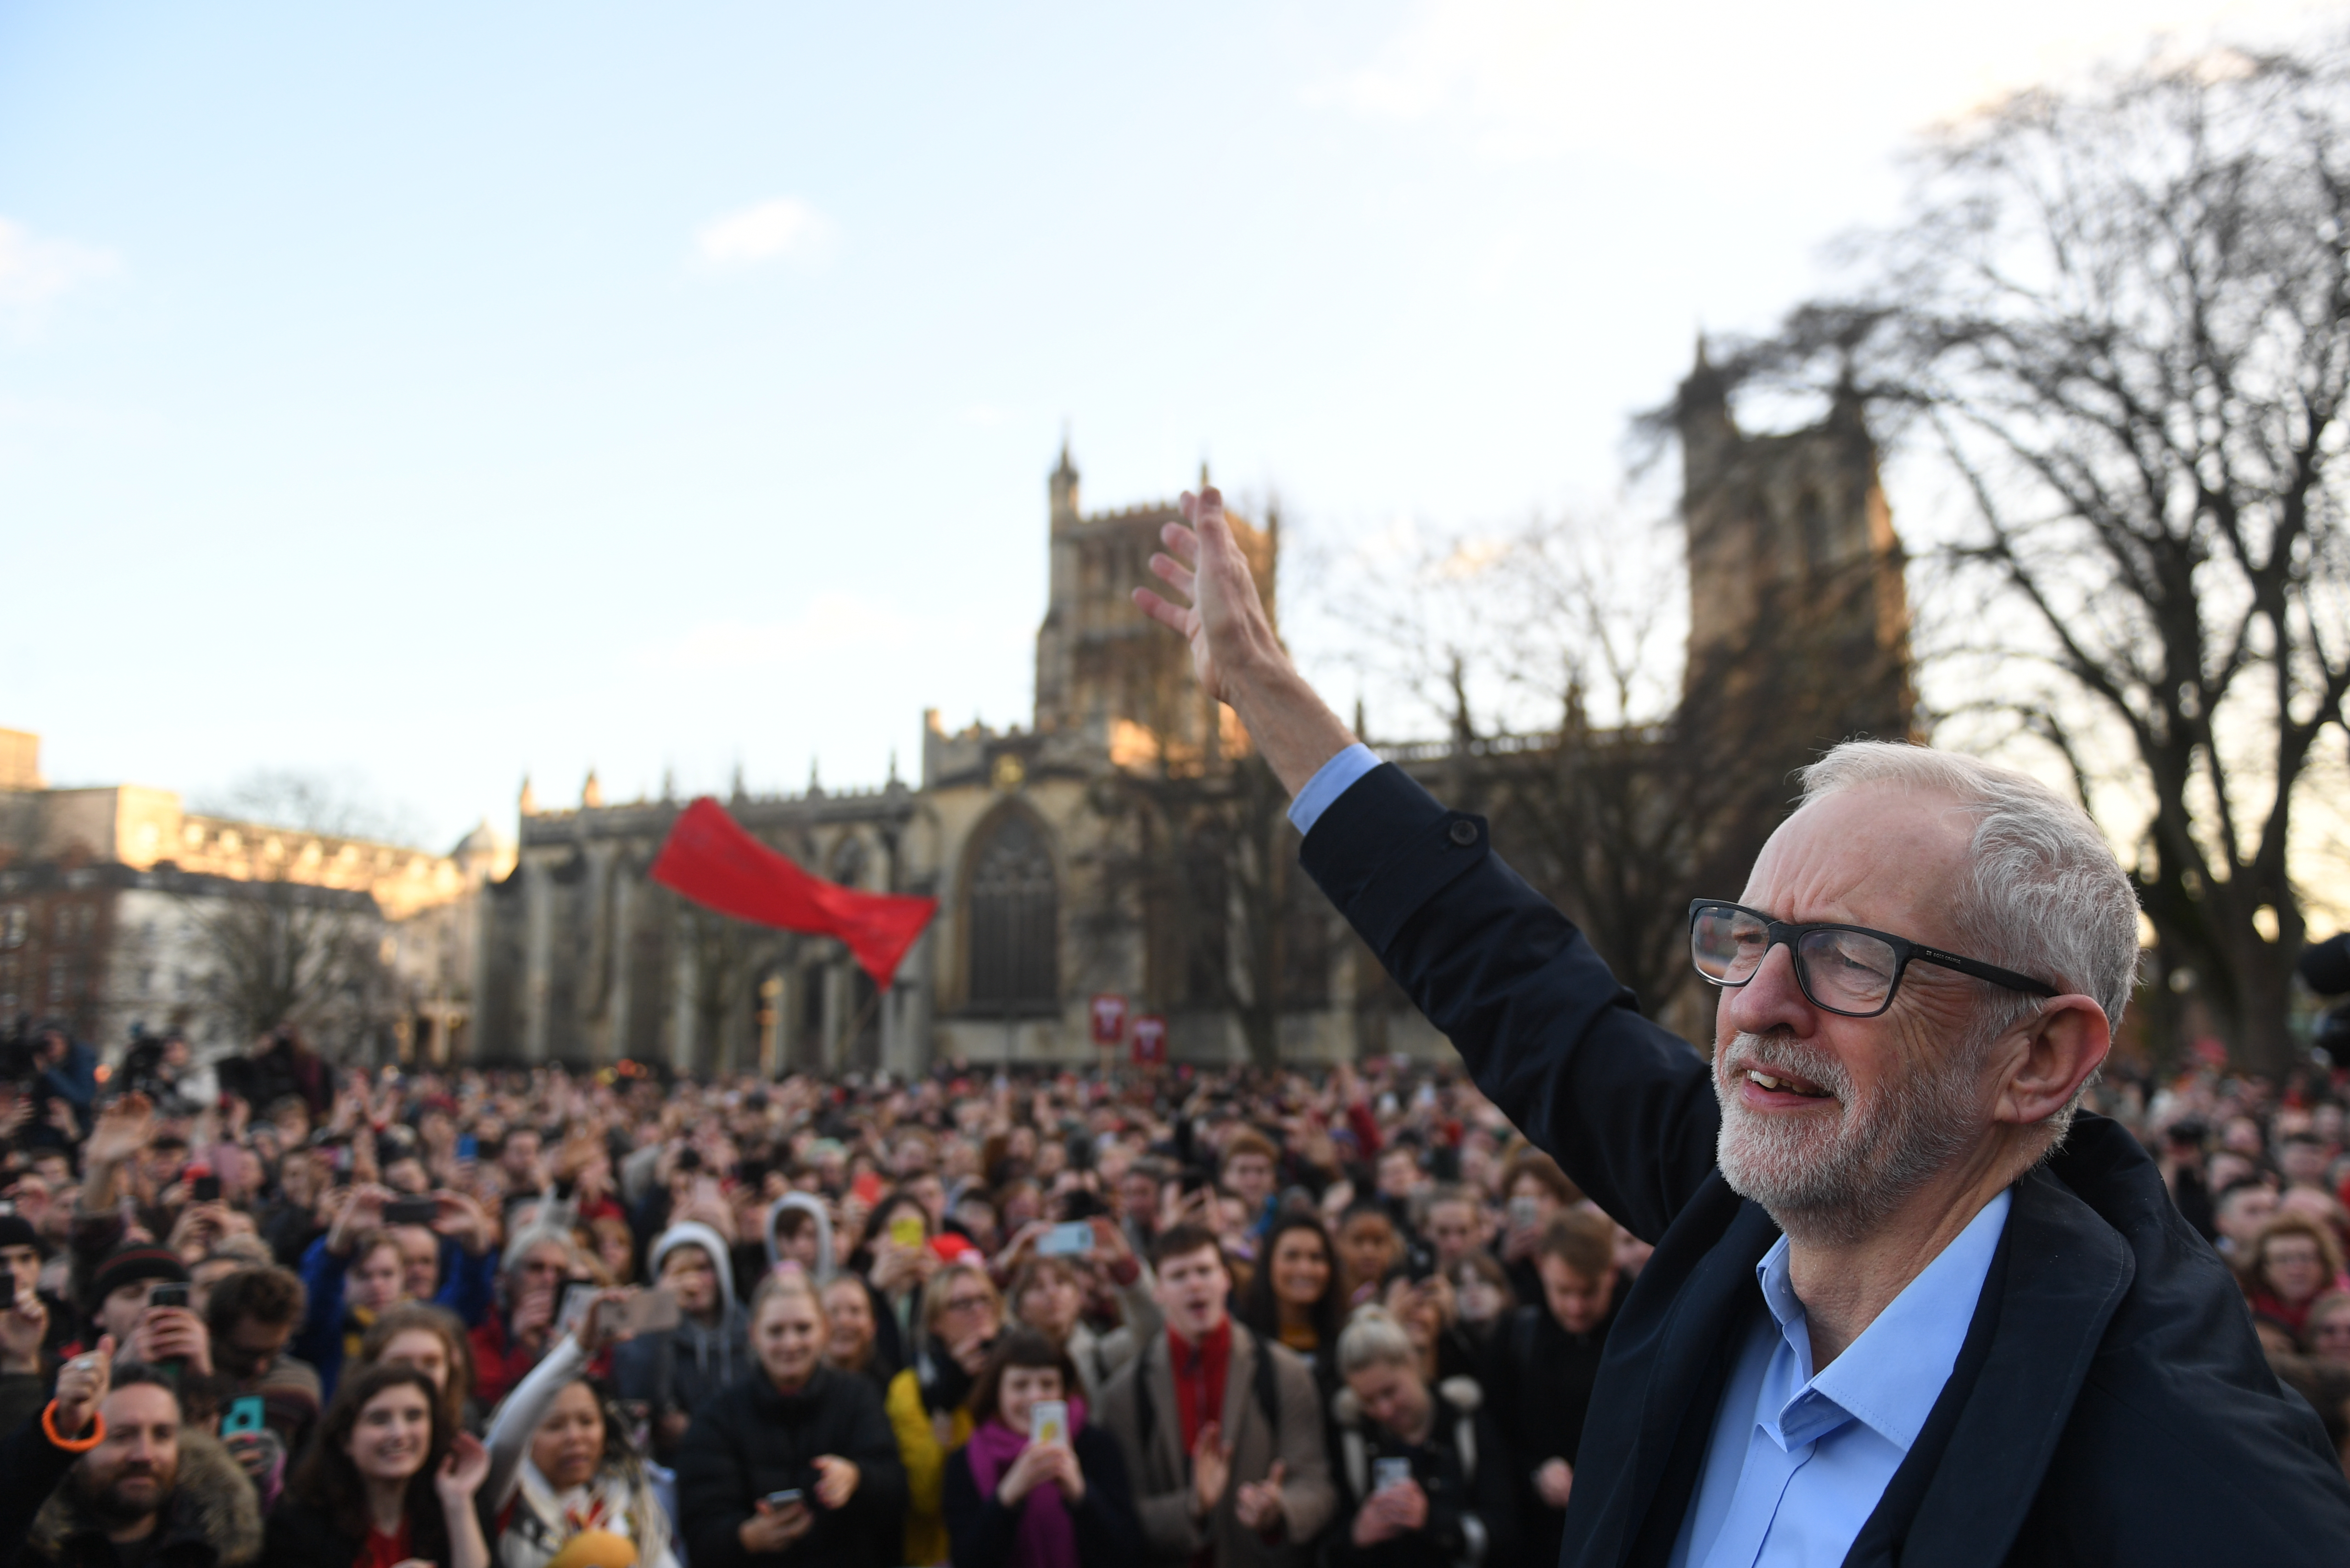 Labour Party leader Jeremy Corbyn waves to supporters after speaking at a rally outside Bristol City Council in Bristol, while on the General Election campaign trail. PA Photo. Picture date: Monday December 9, 2019. Photo credit should read: Joe Giddens/PA Wire